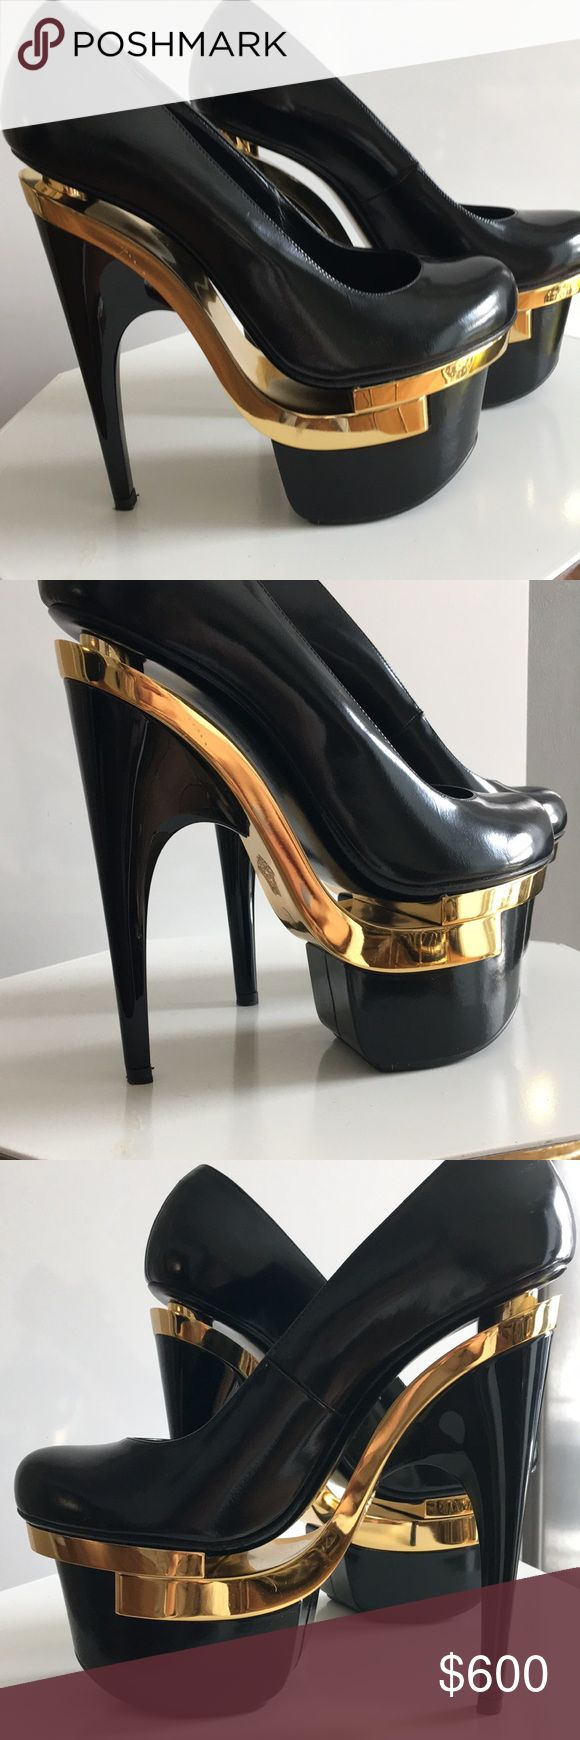 Versace pumps size 38.5 These amazing heels I bought from a boutique. Not sure why I bought size 38.5... and when I went to exchange they told me it was a final sale. I wore them once around the house! Versace Shoes Platforms